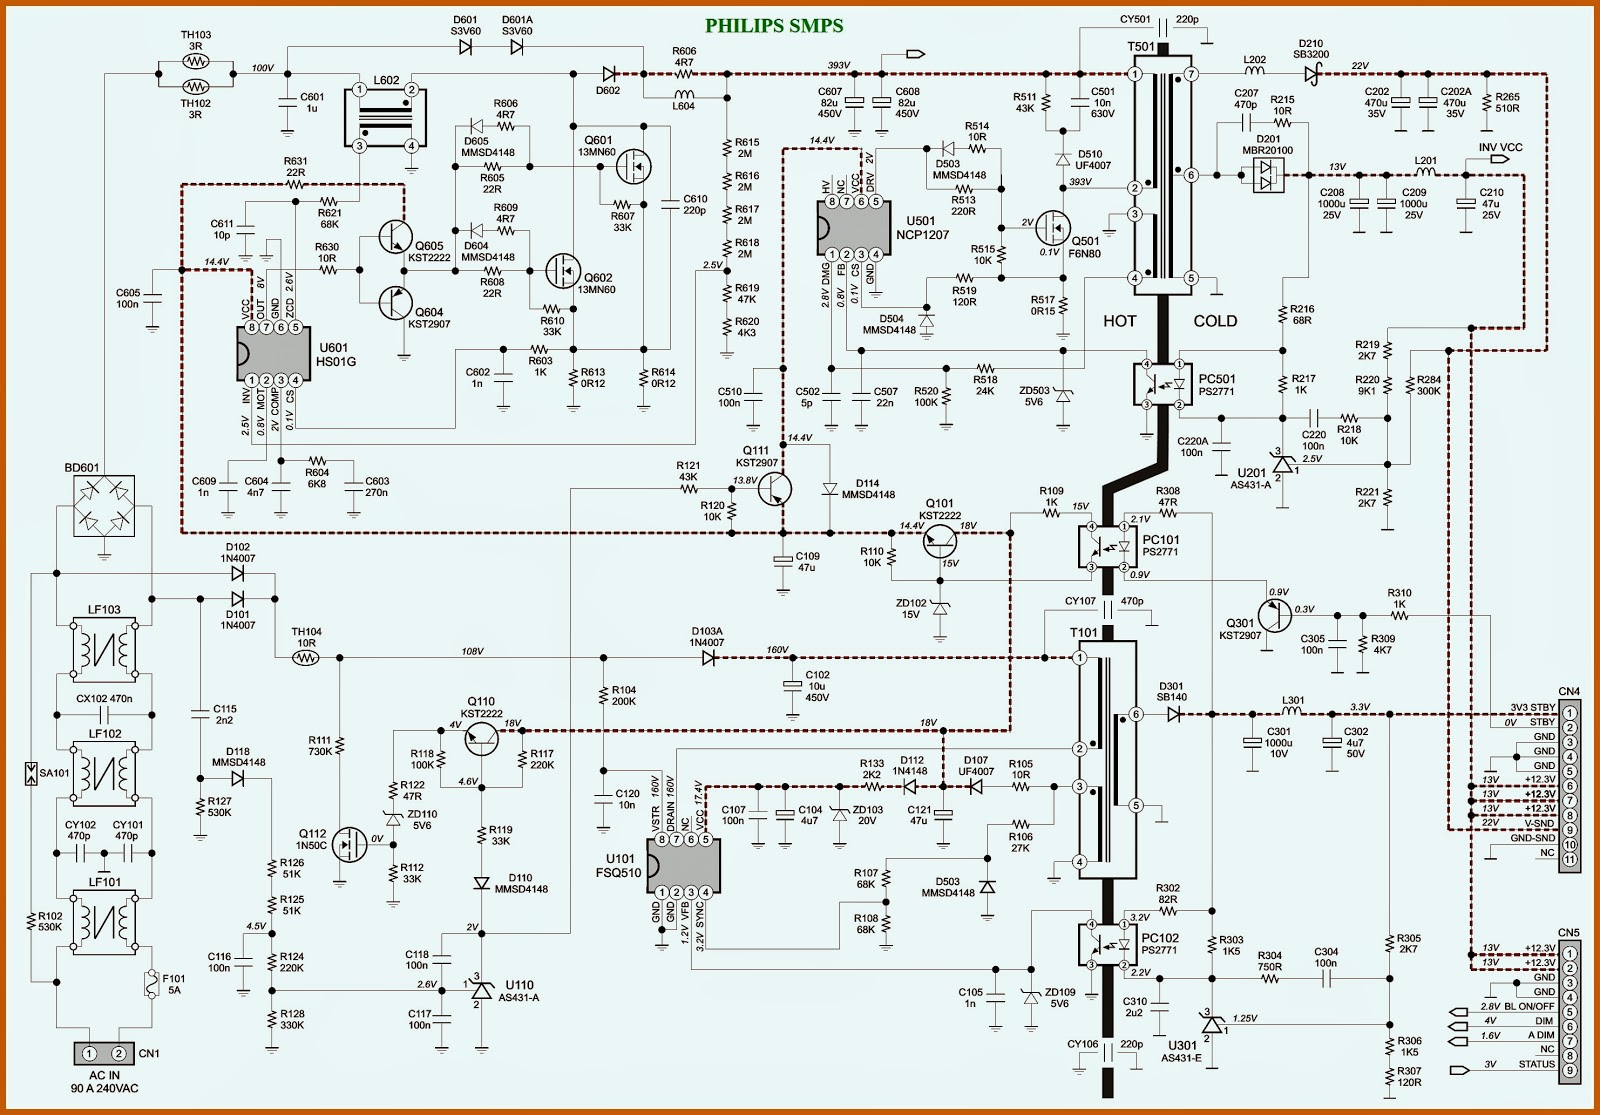 PHILIPS 1 philips 40pfl3606 lcd tv power supply schematic electro help Flat Screen TV Drawing at gsmportal.co